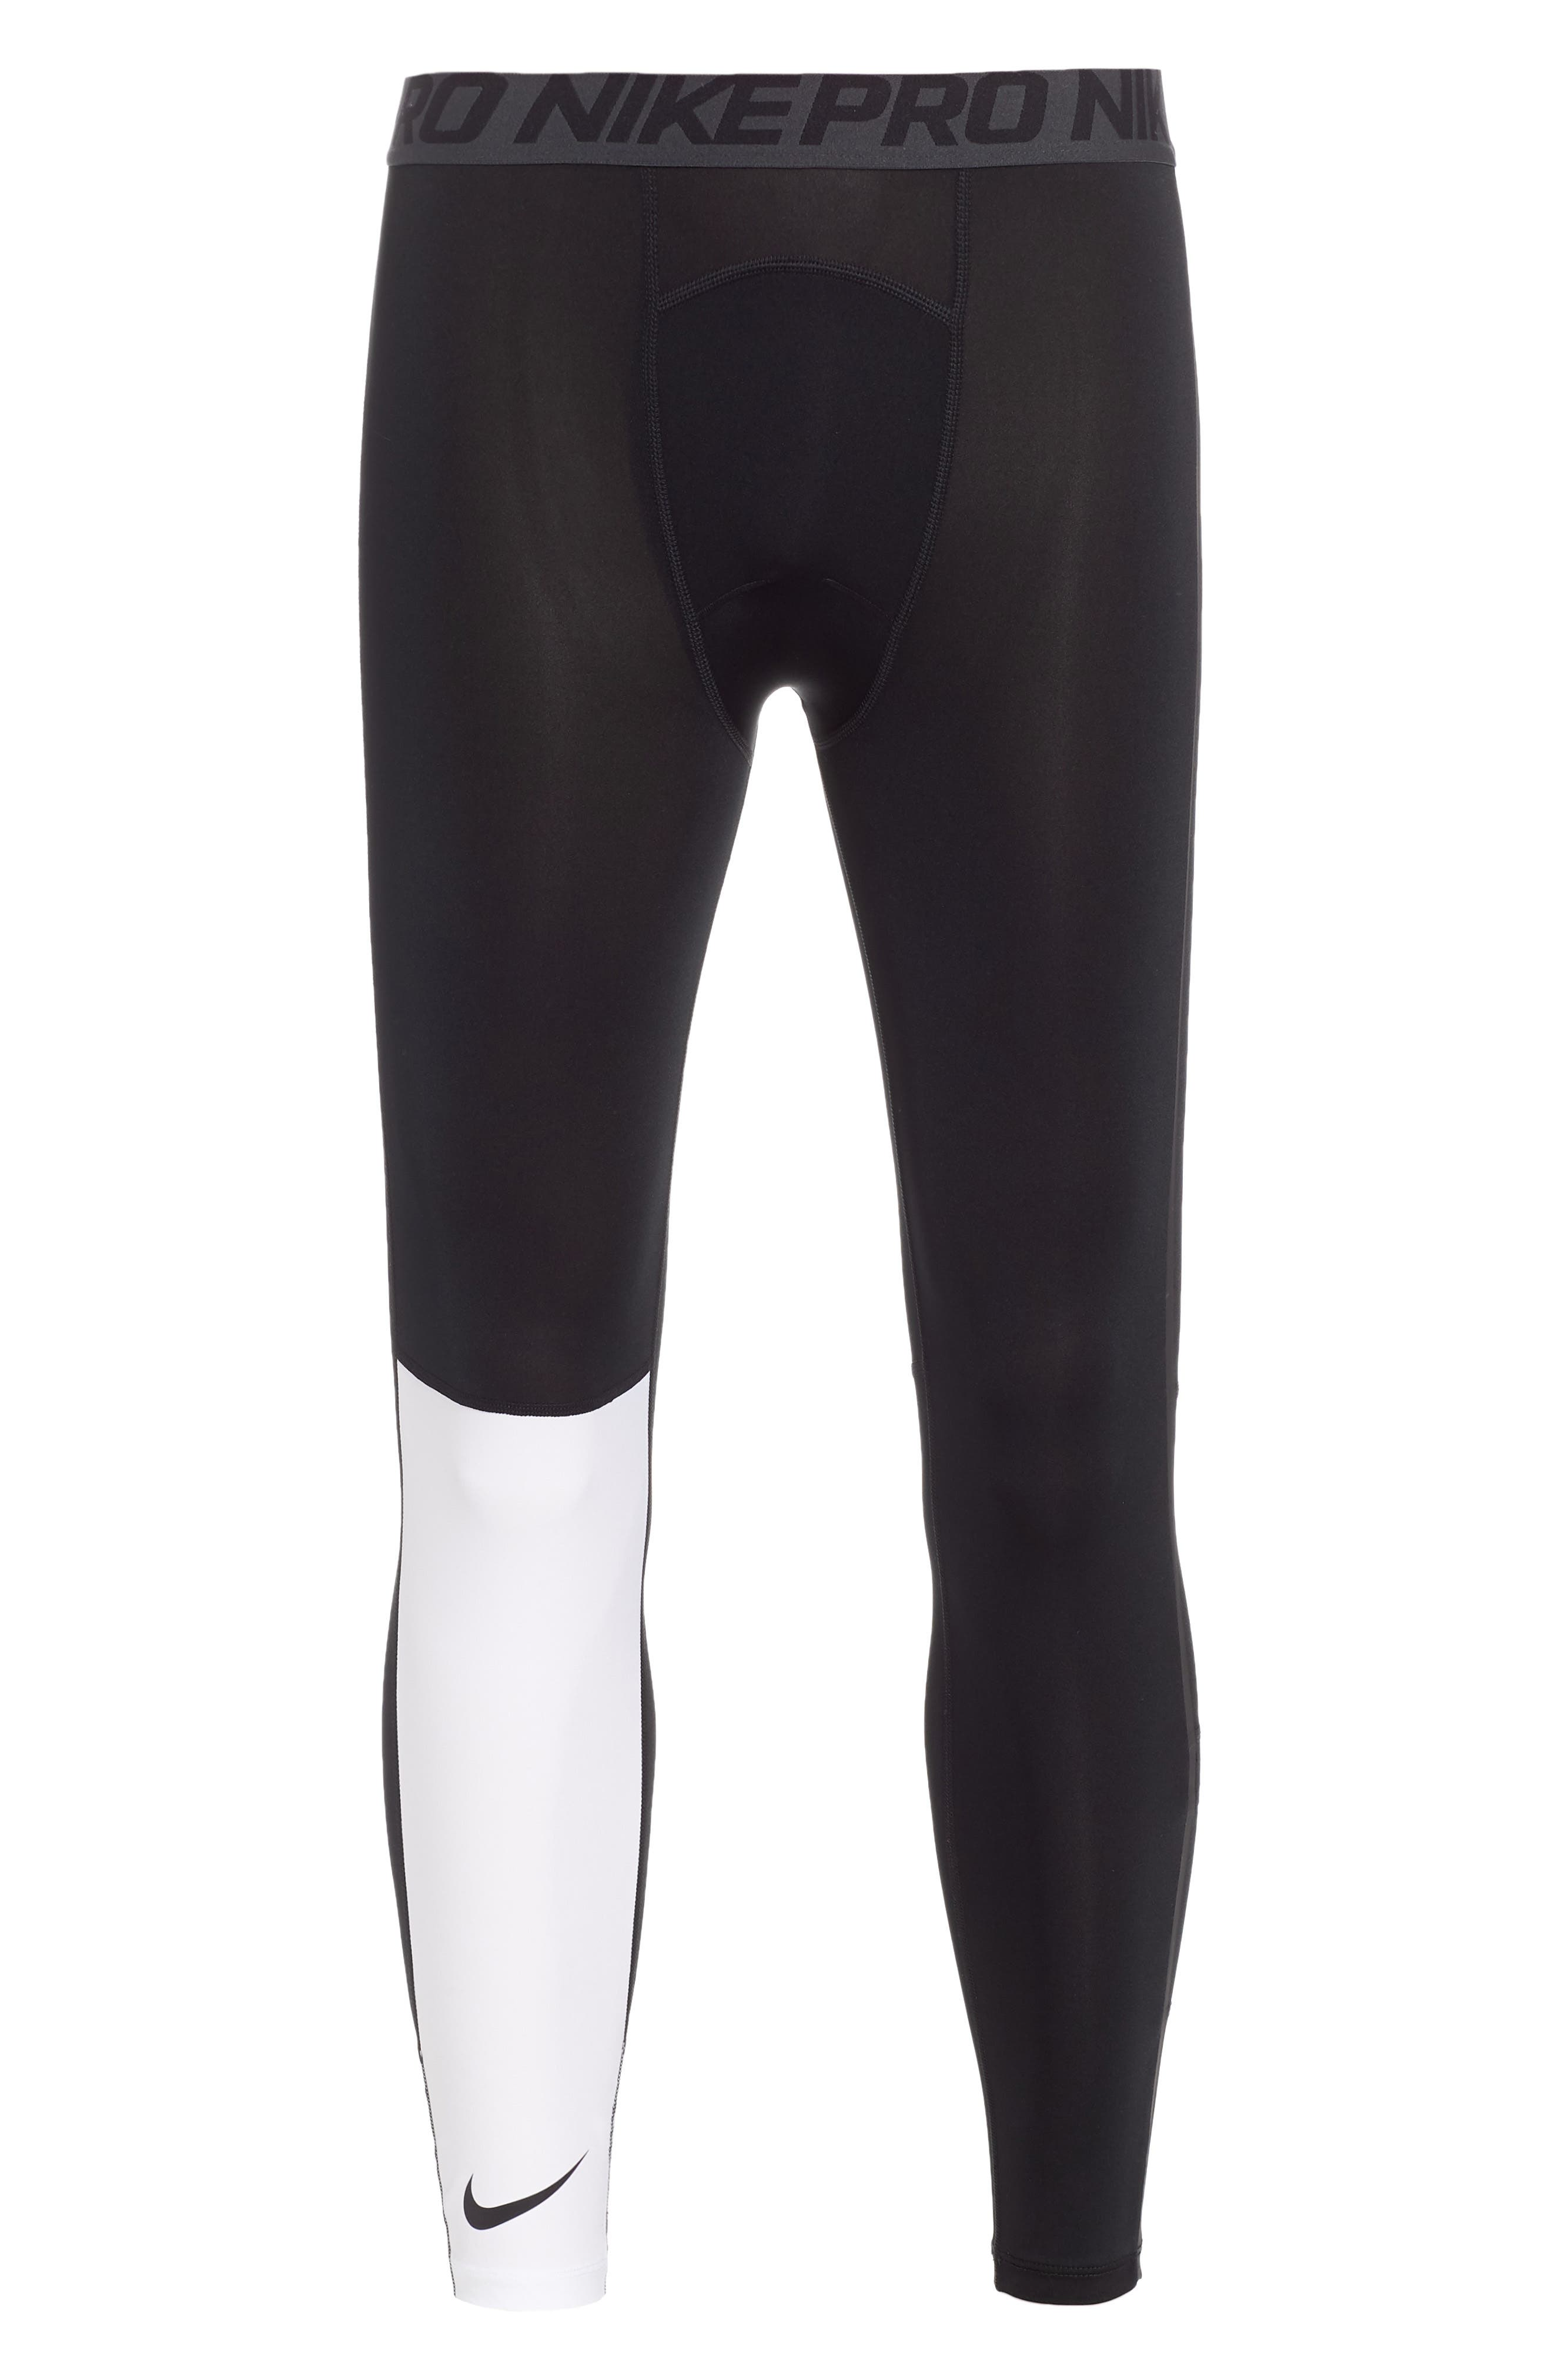 NP Running Tights,                             Alternate thumbnail 6, color,                             010